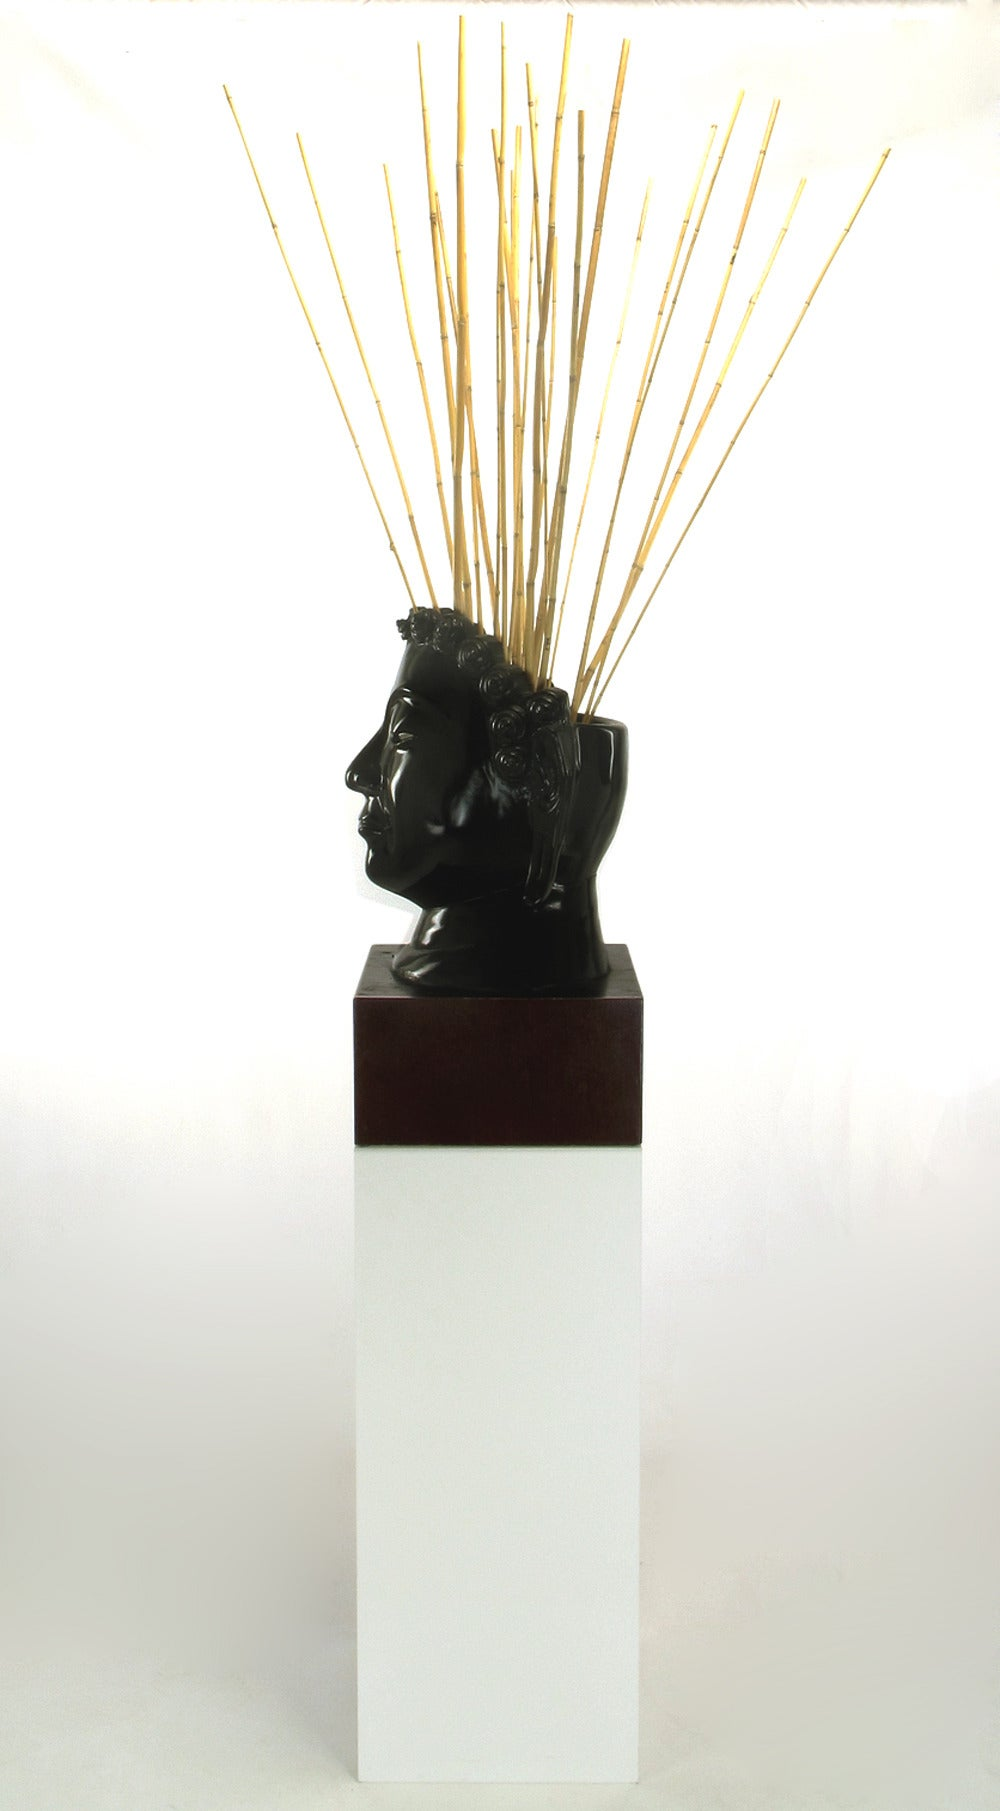 Buddha-Form Mahogany and Black Lacquer Sculpture on White Lucite Pedestal In Good Condition For Sale In Chicago, IL